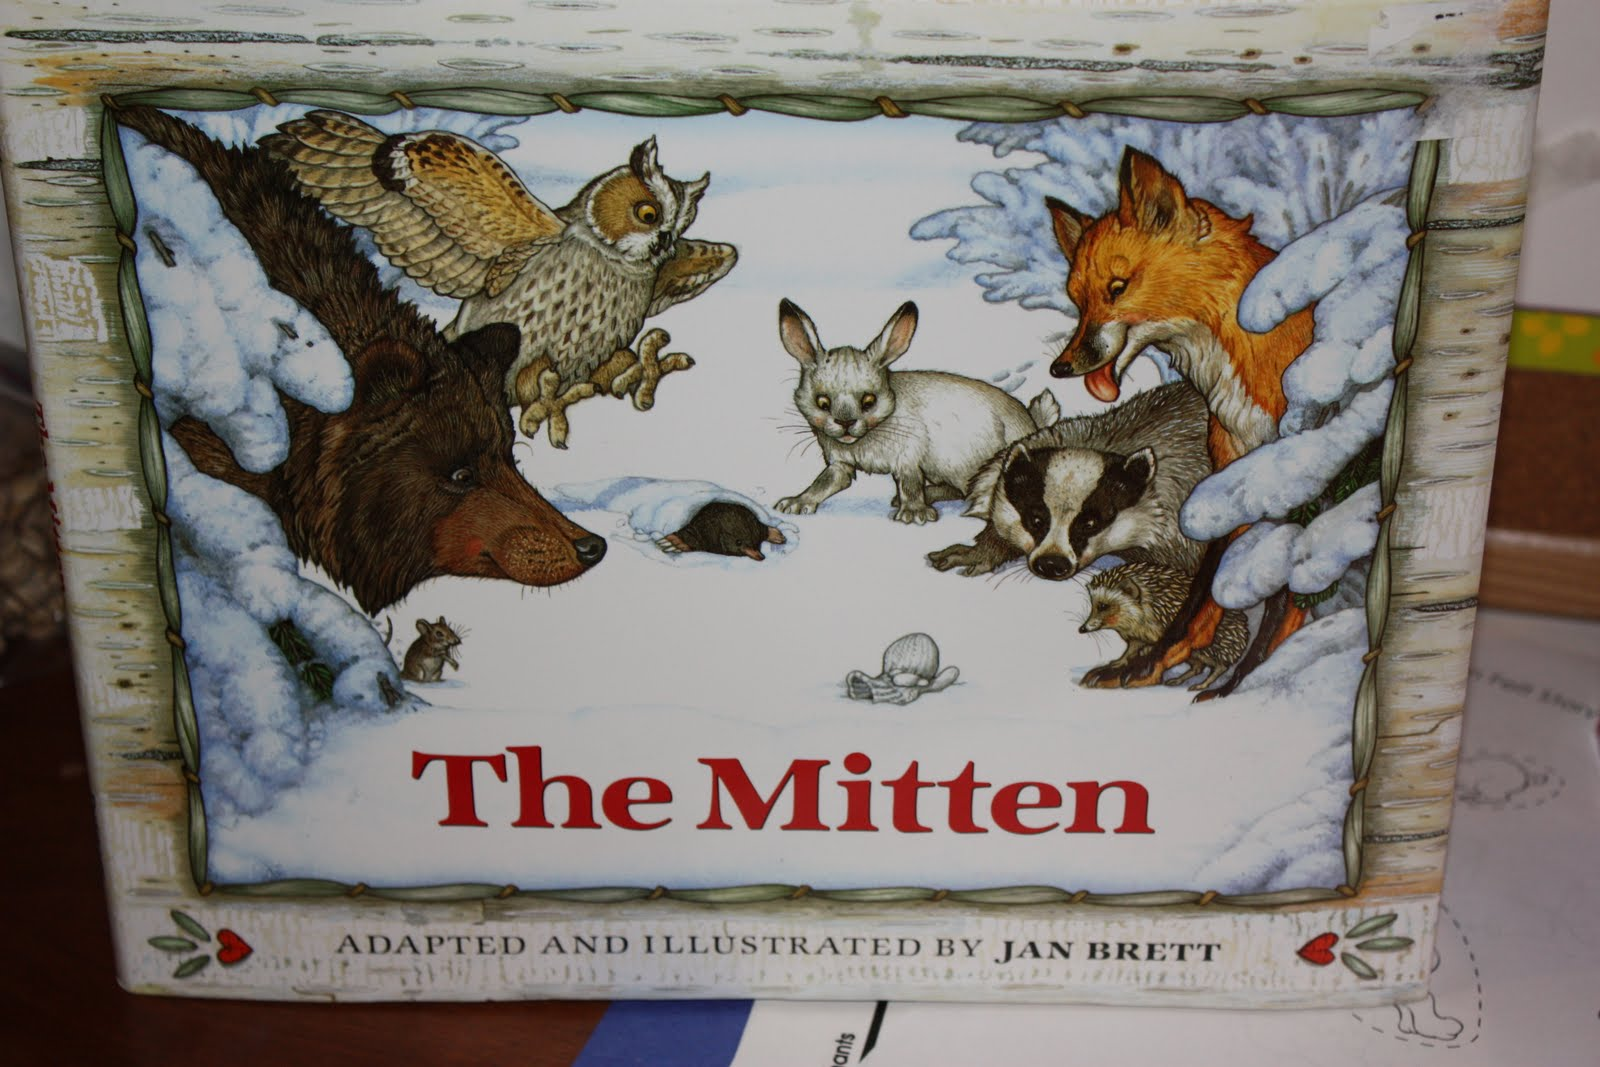 The Mitten By Jan Brett The mitten, illustrated by